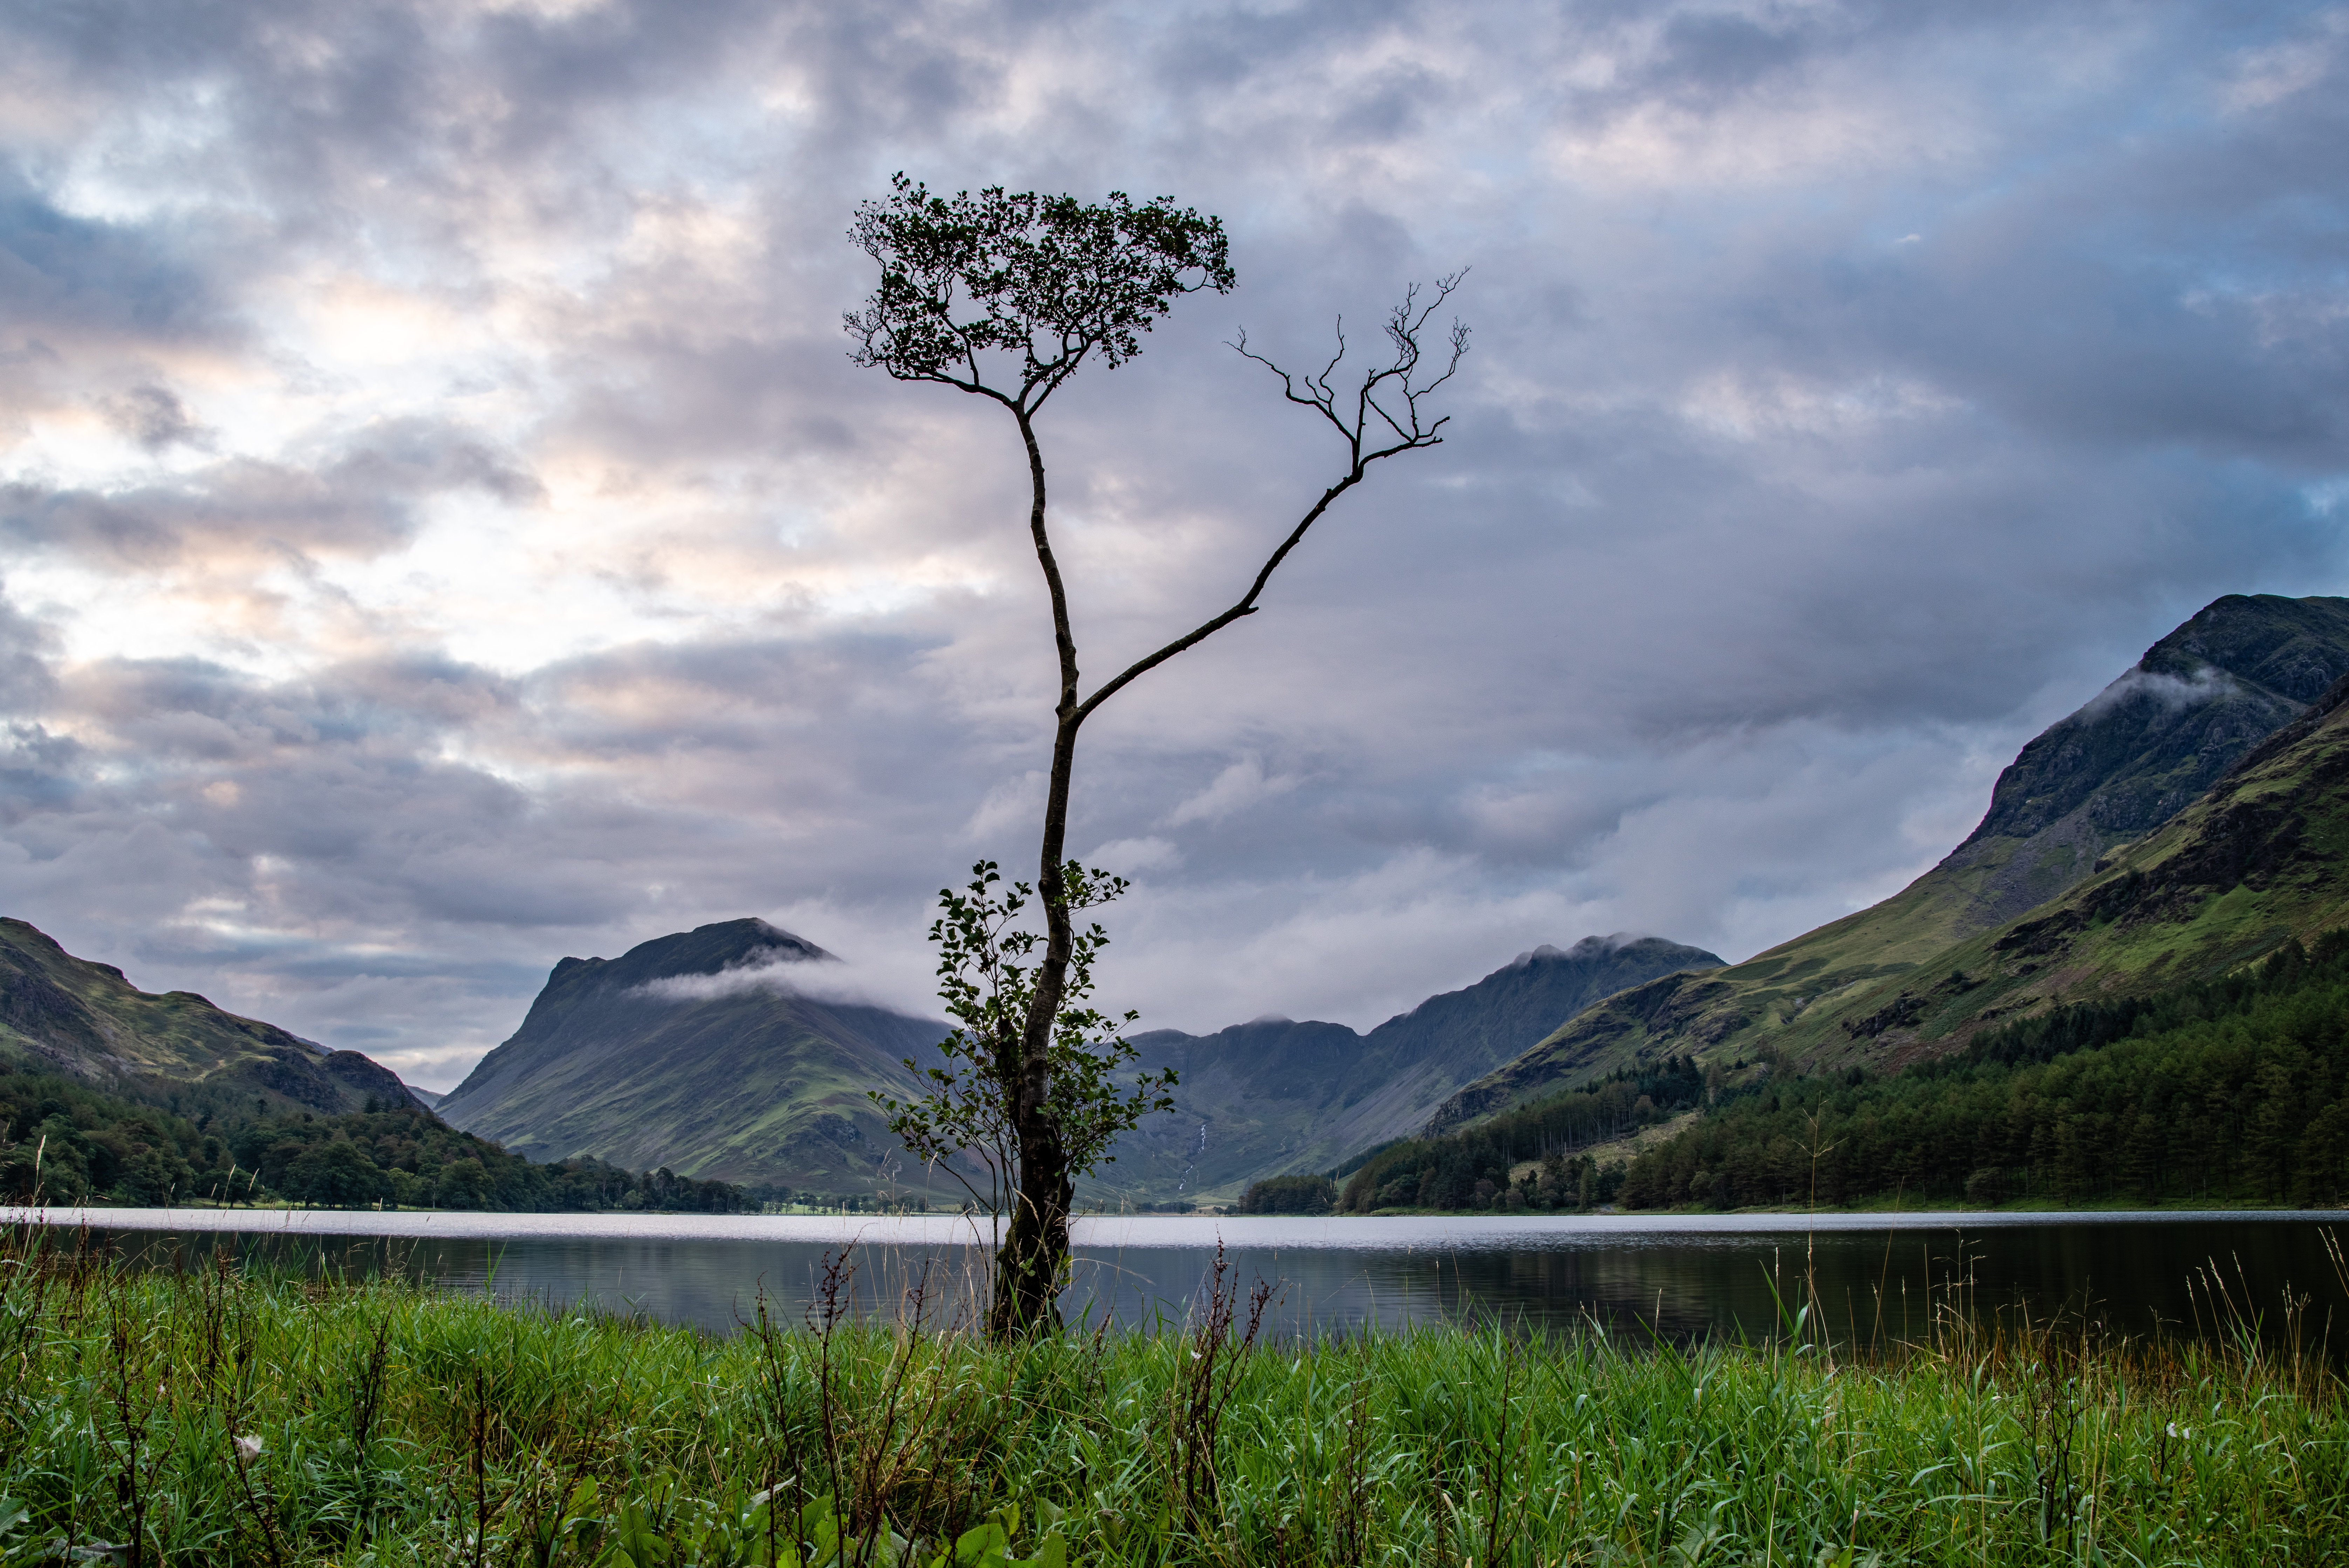 Butteremere is one of the prettiest lakes in the English Lake District and this lone tree is one of the most photographed. When I arrived to take my photo I had hoped for  light cloud and a mirror like lake: the weather forecast had been promising. In fact there was almost 100% cloud cover and a breeze that was stirring up the water. This shot was the best I could manage. The cloud didn't clear until hours later.